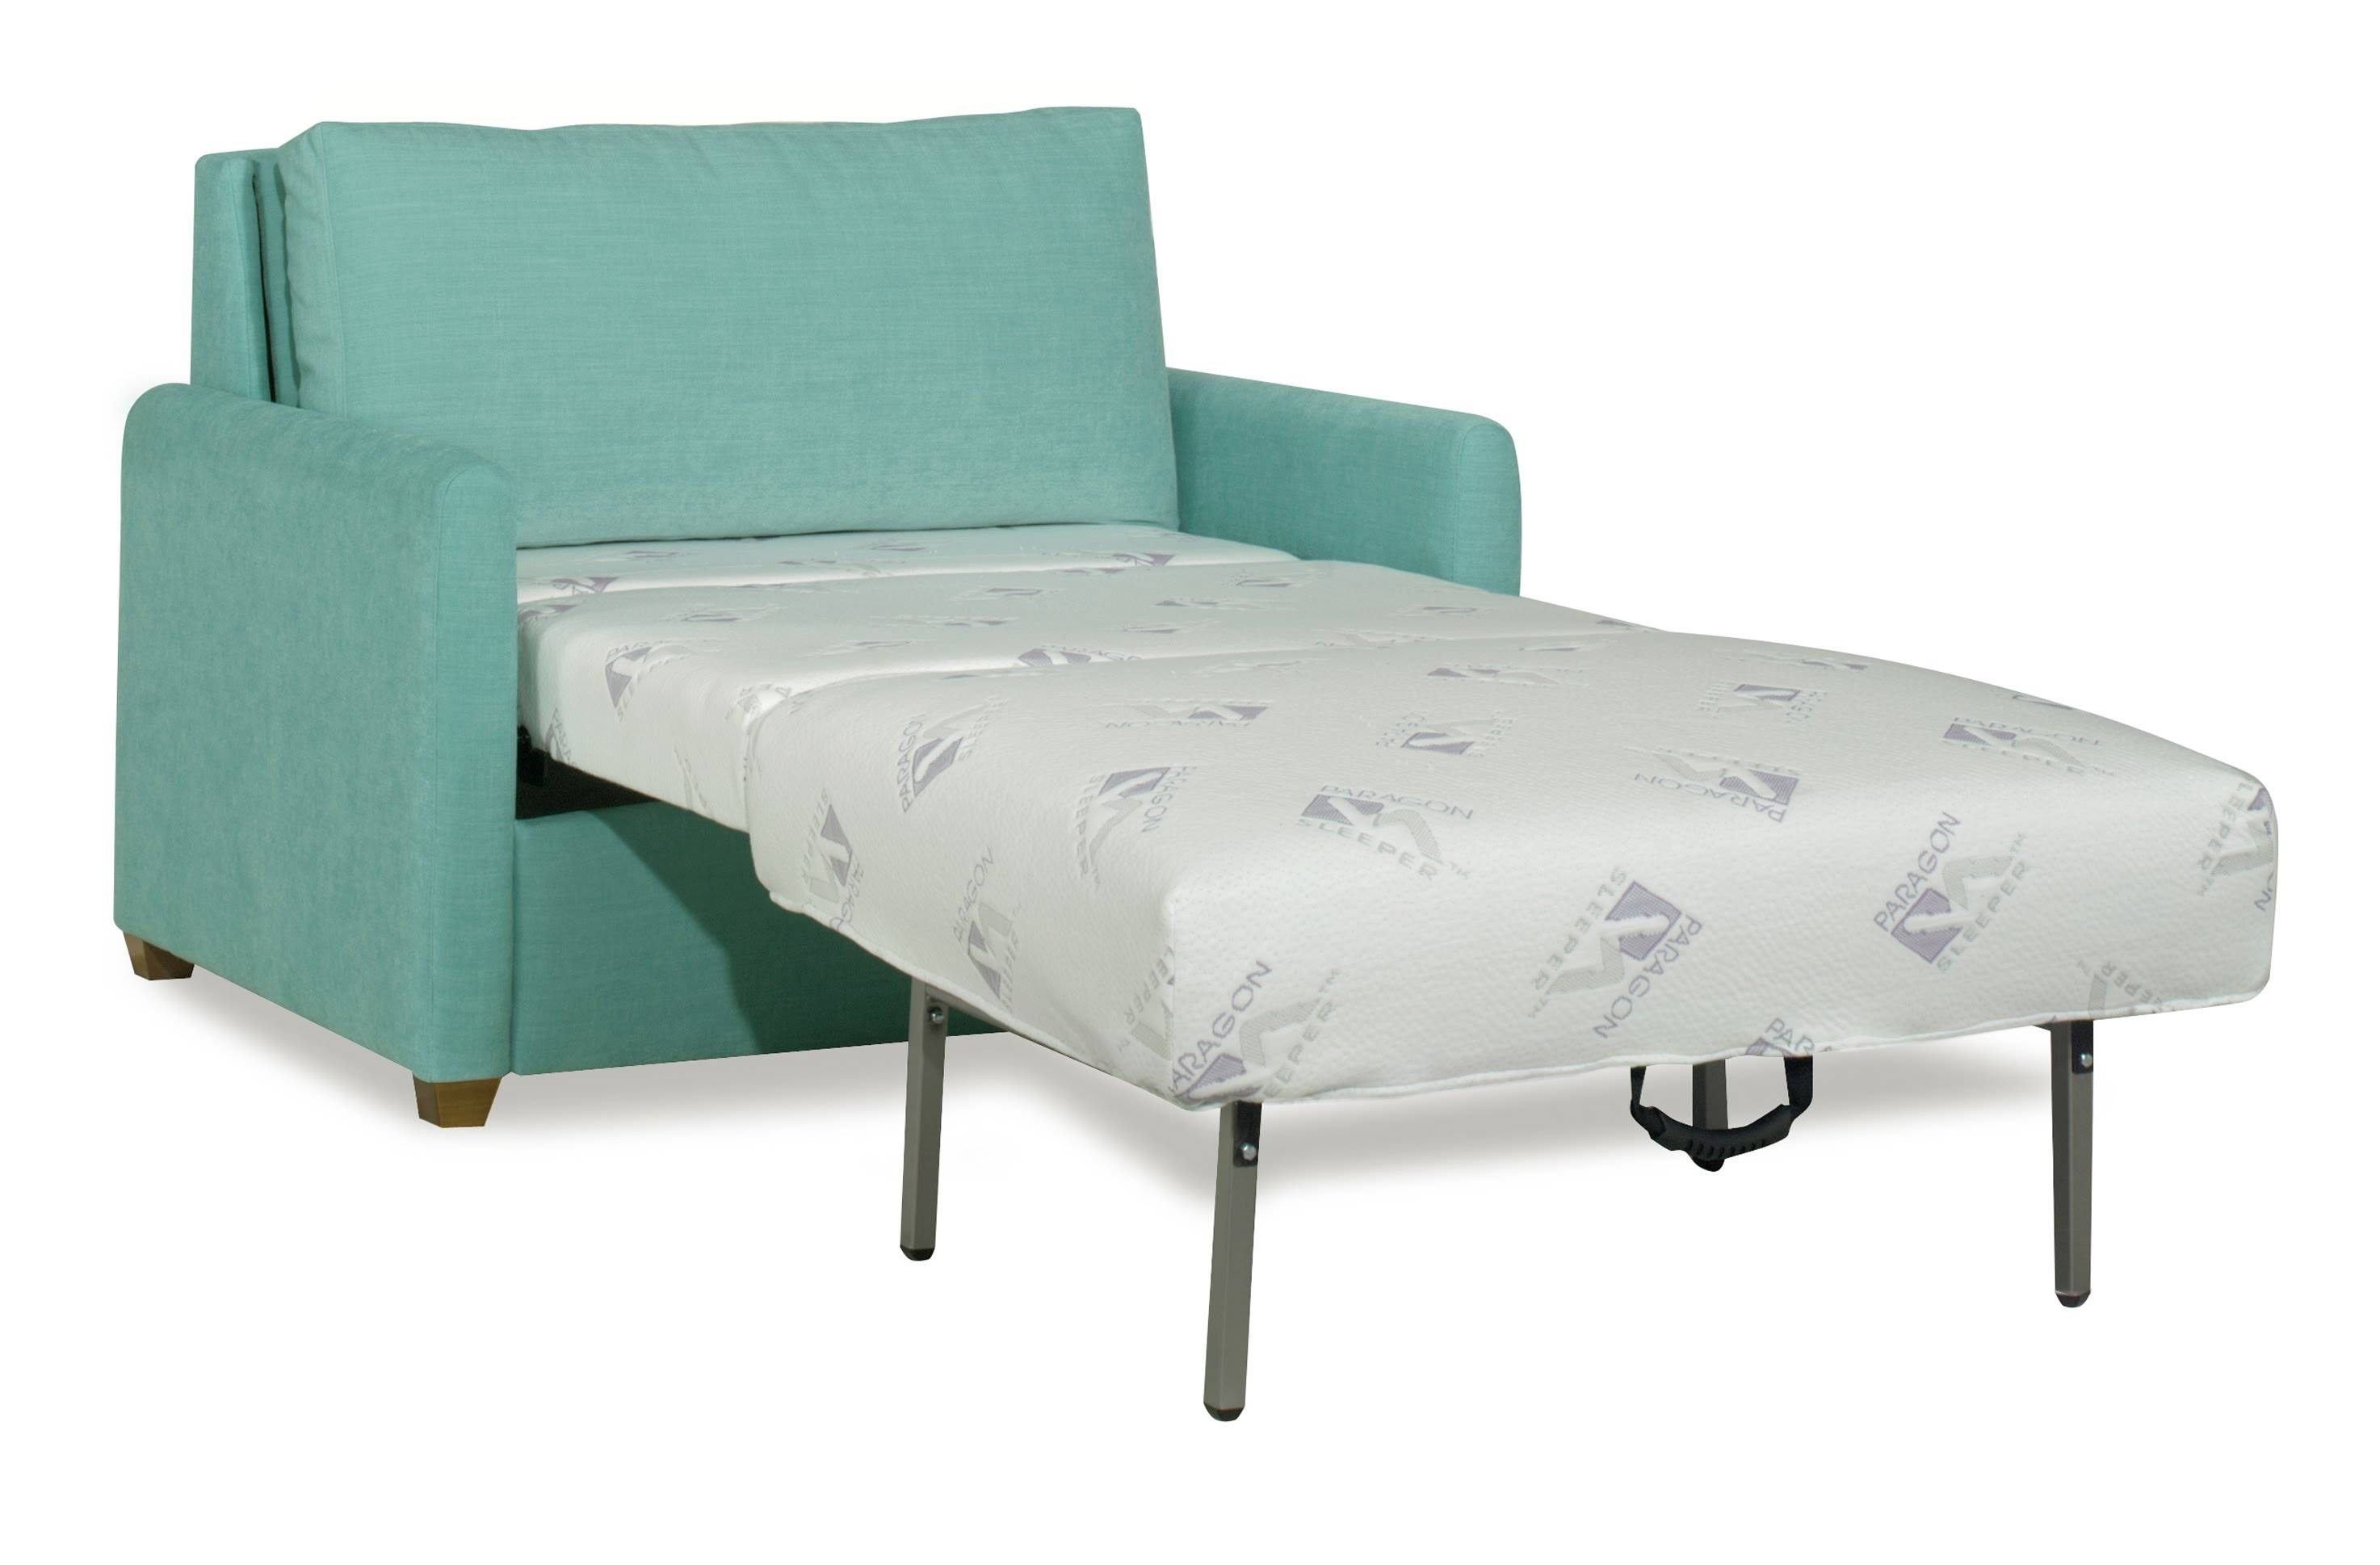 Twin Sleeper Chair | Twin Sleeper Chair Crate And Barrel - Youtube regarding Crate And Barrel Sleeper Sofas (Image 14 of 15)